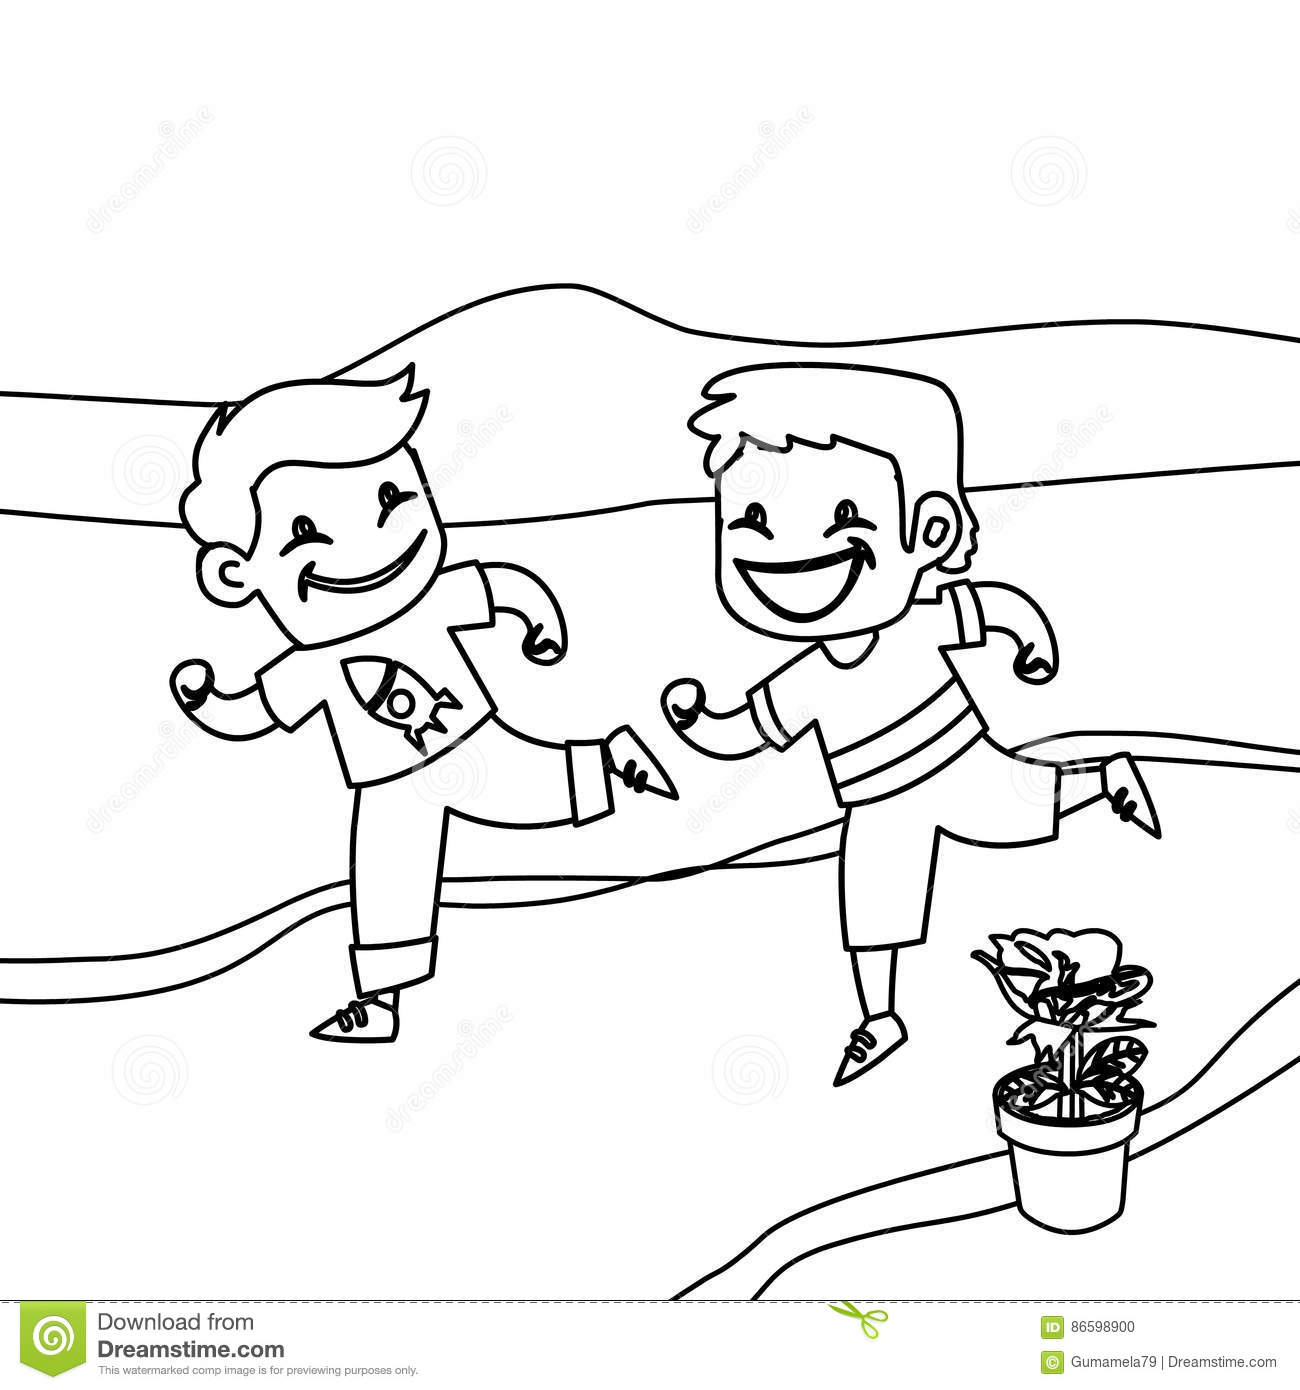 Children Running Coloring Page Stock Illustration